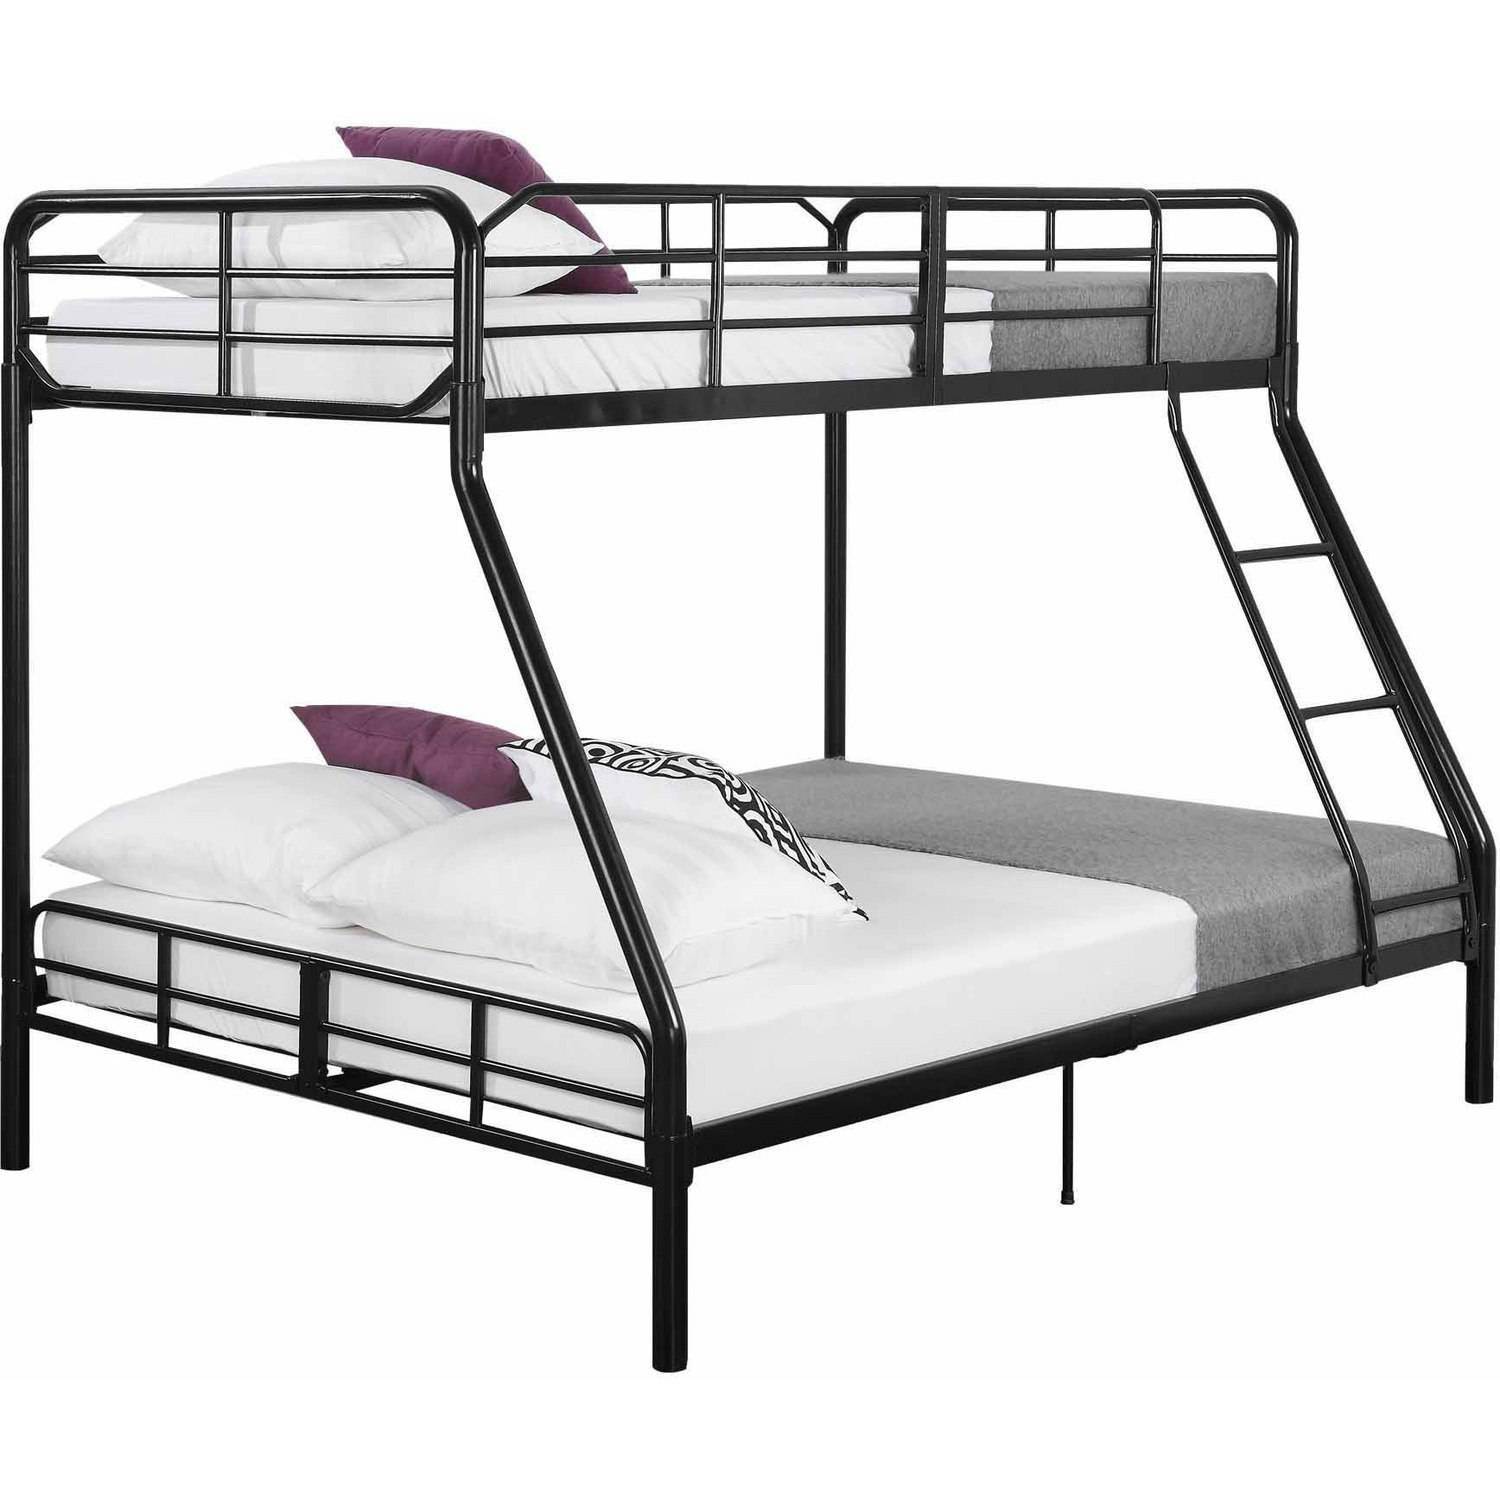 Loft bed plans for full size mattress  Black Twin Over Full Bunk Beds  Interior House Paint Colors Check